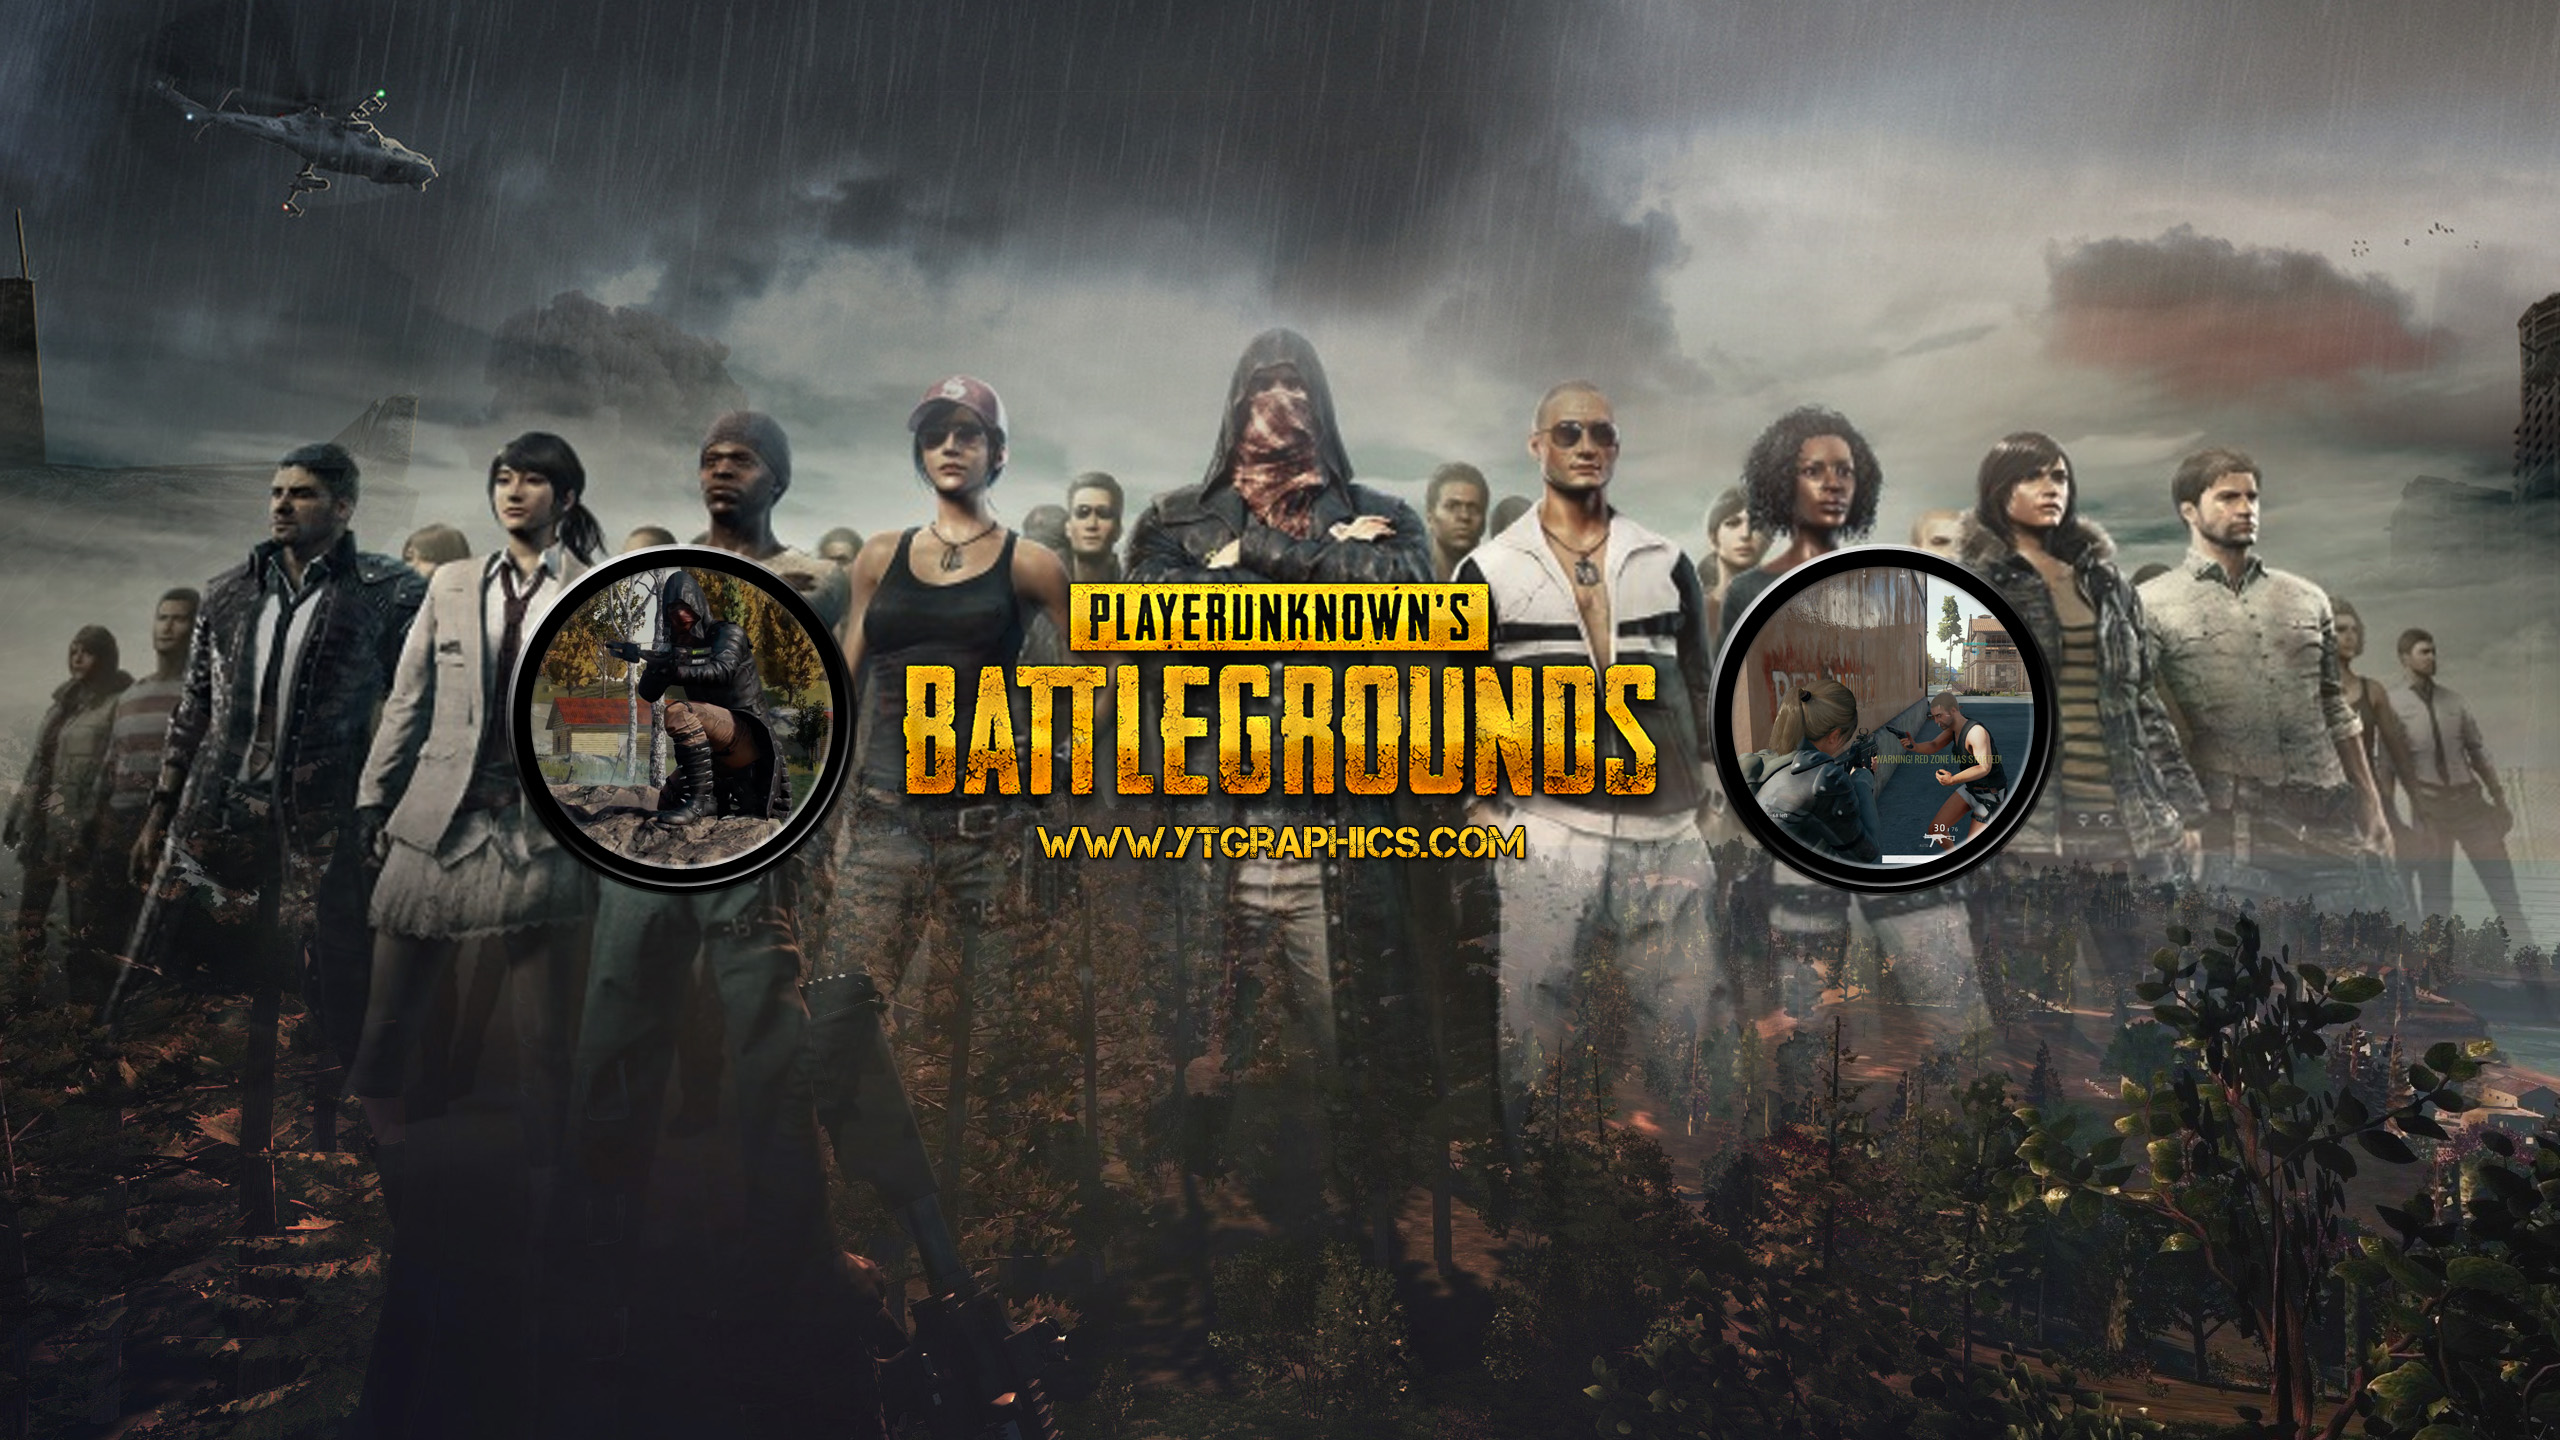 Download 1920x1080 Wallpaper Player Unknown S: PLAYERUNKNOWN'S BATTLEGROUNDS